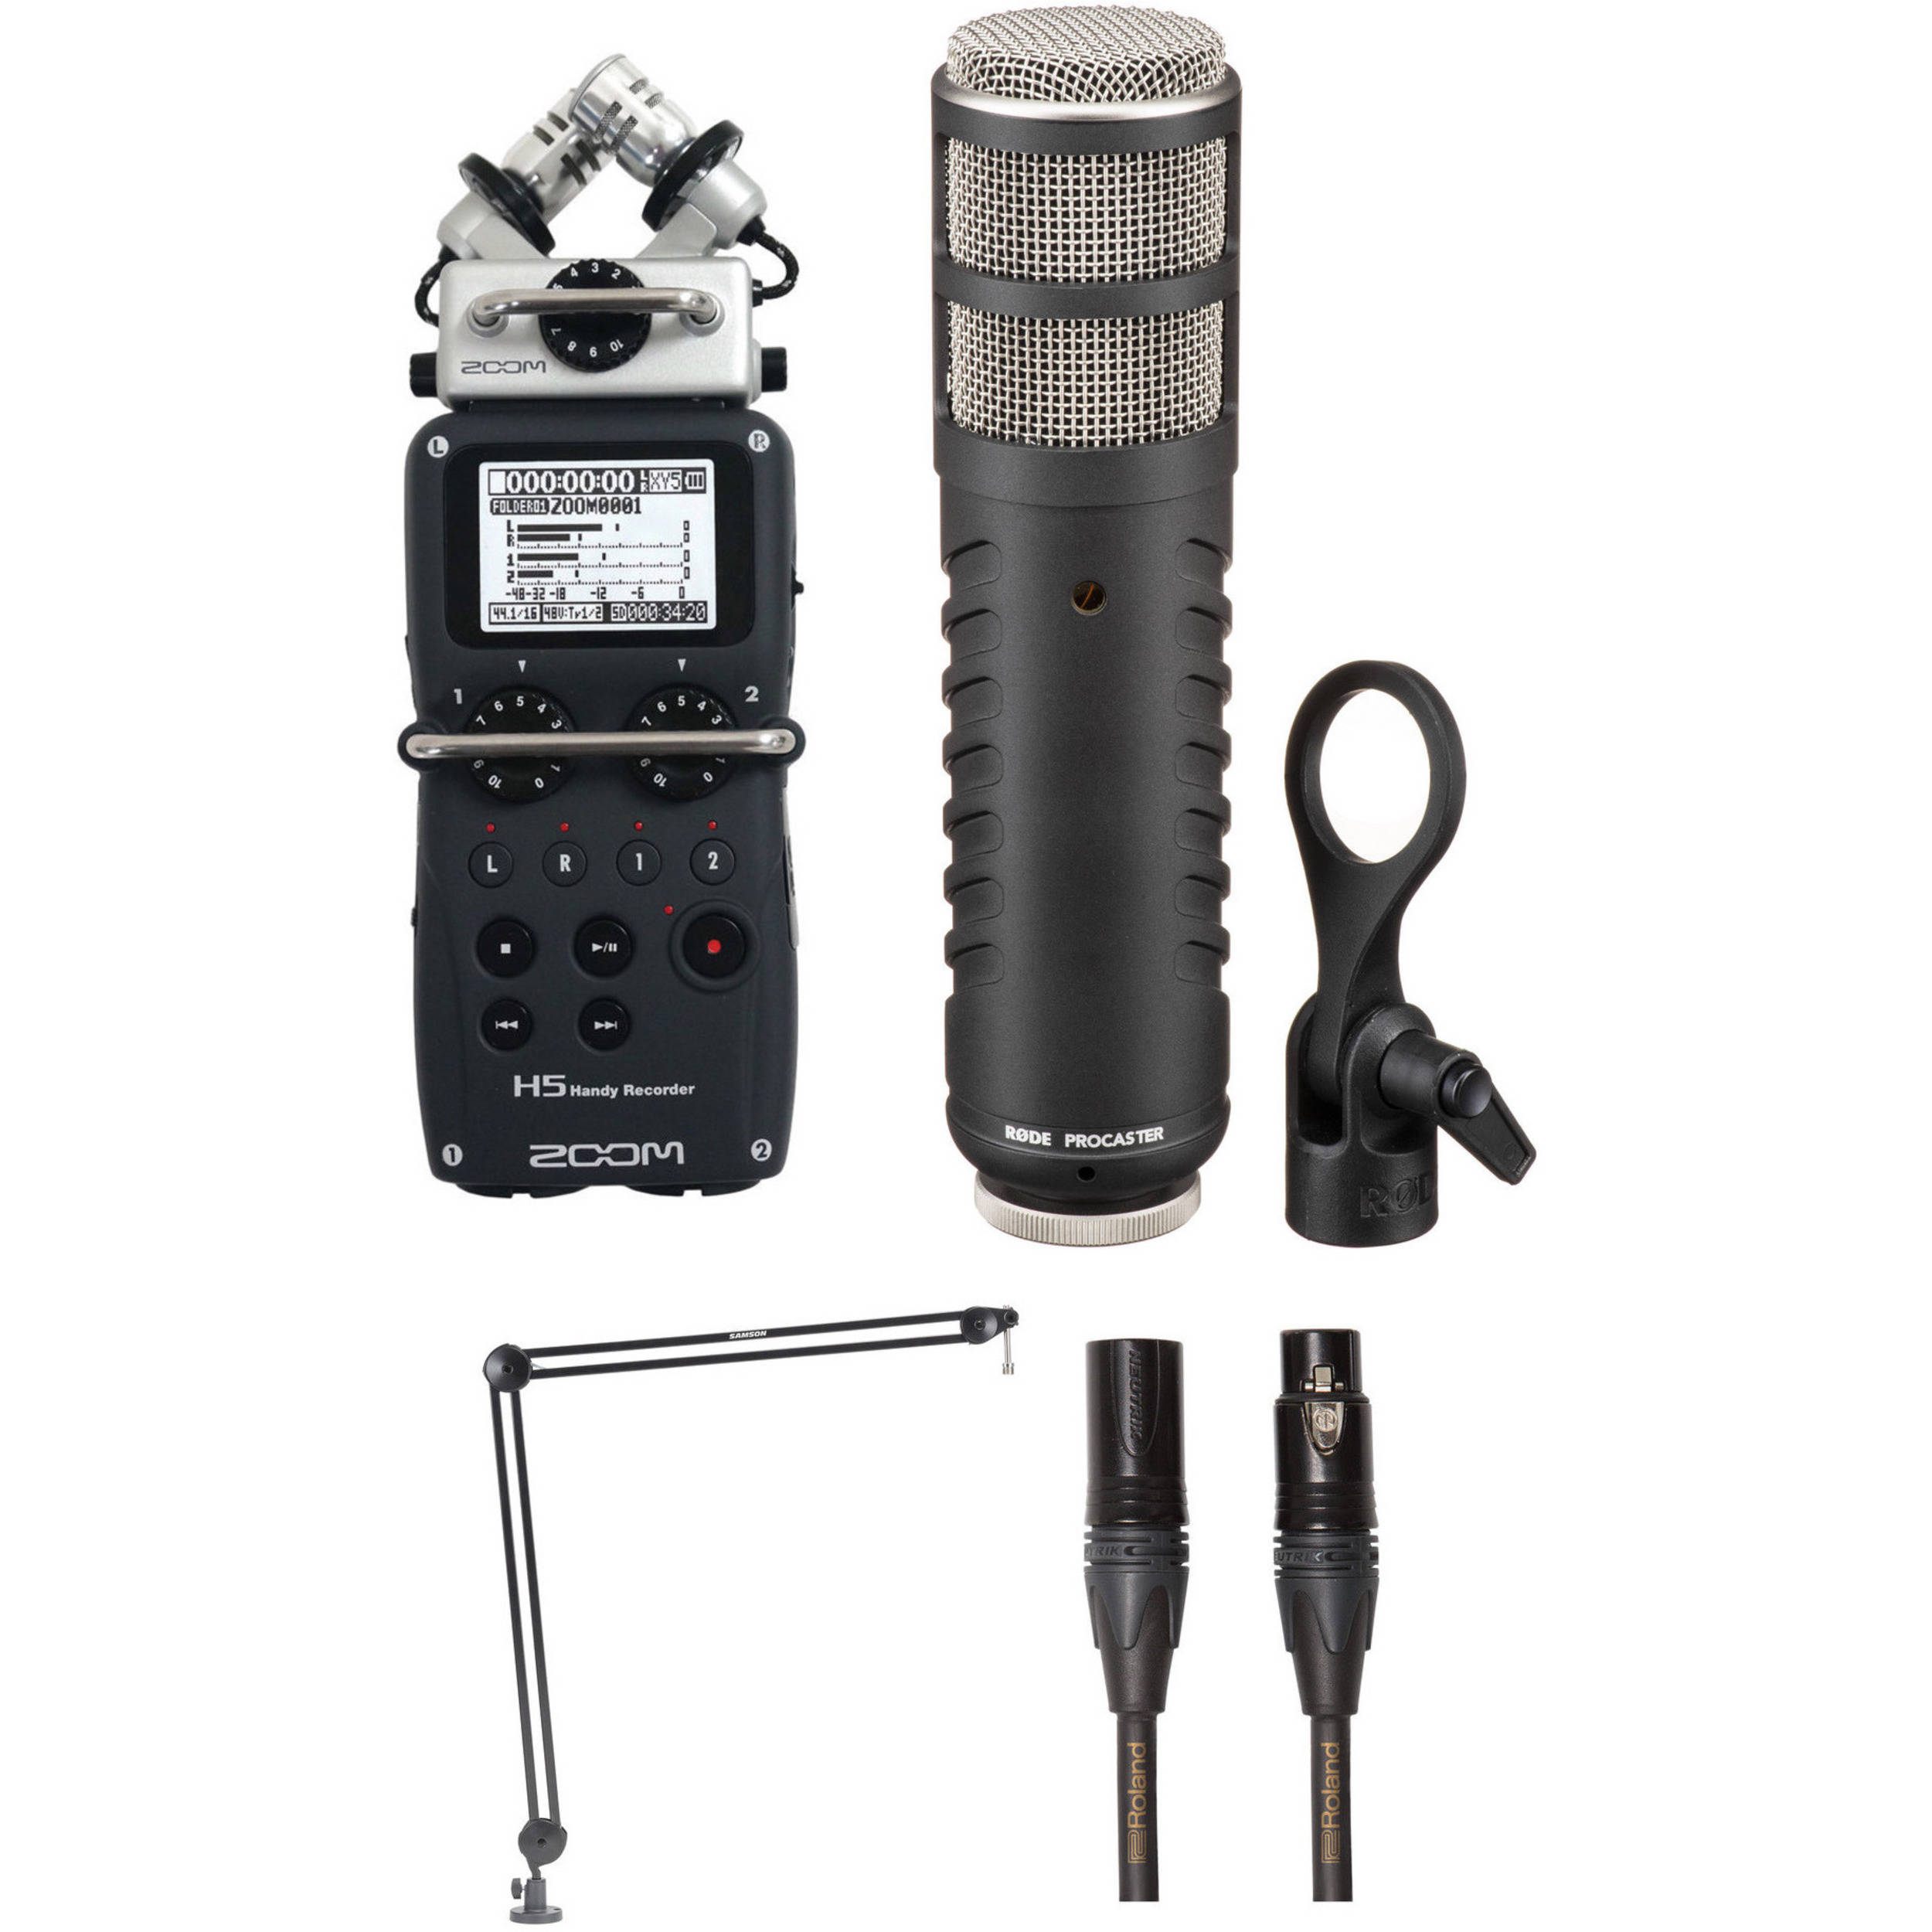 Zoom H5 Recorder Podcast Kit with RØDE Procaster Mic